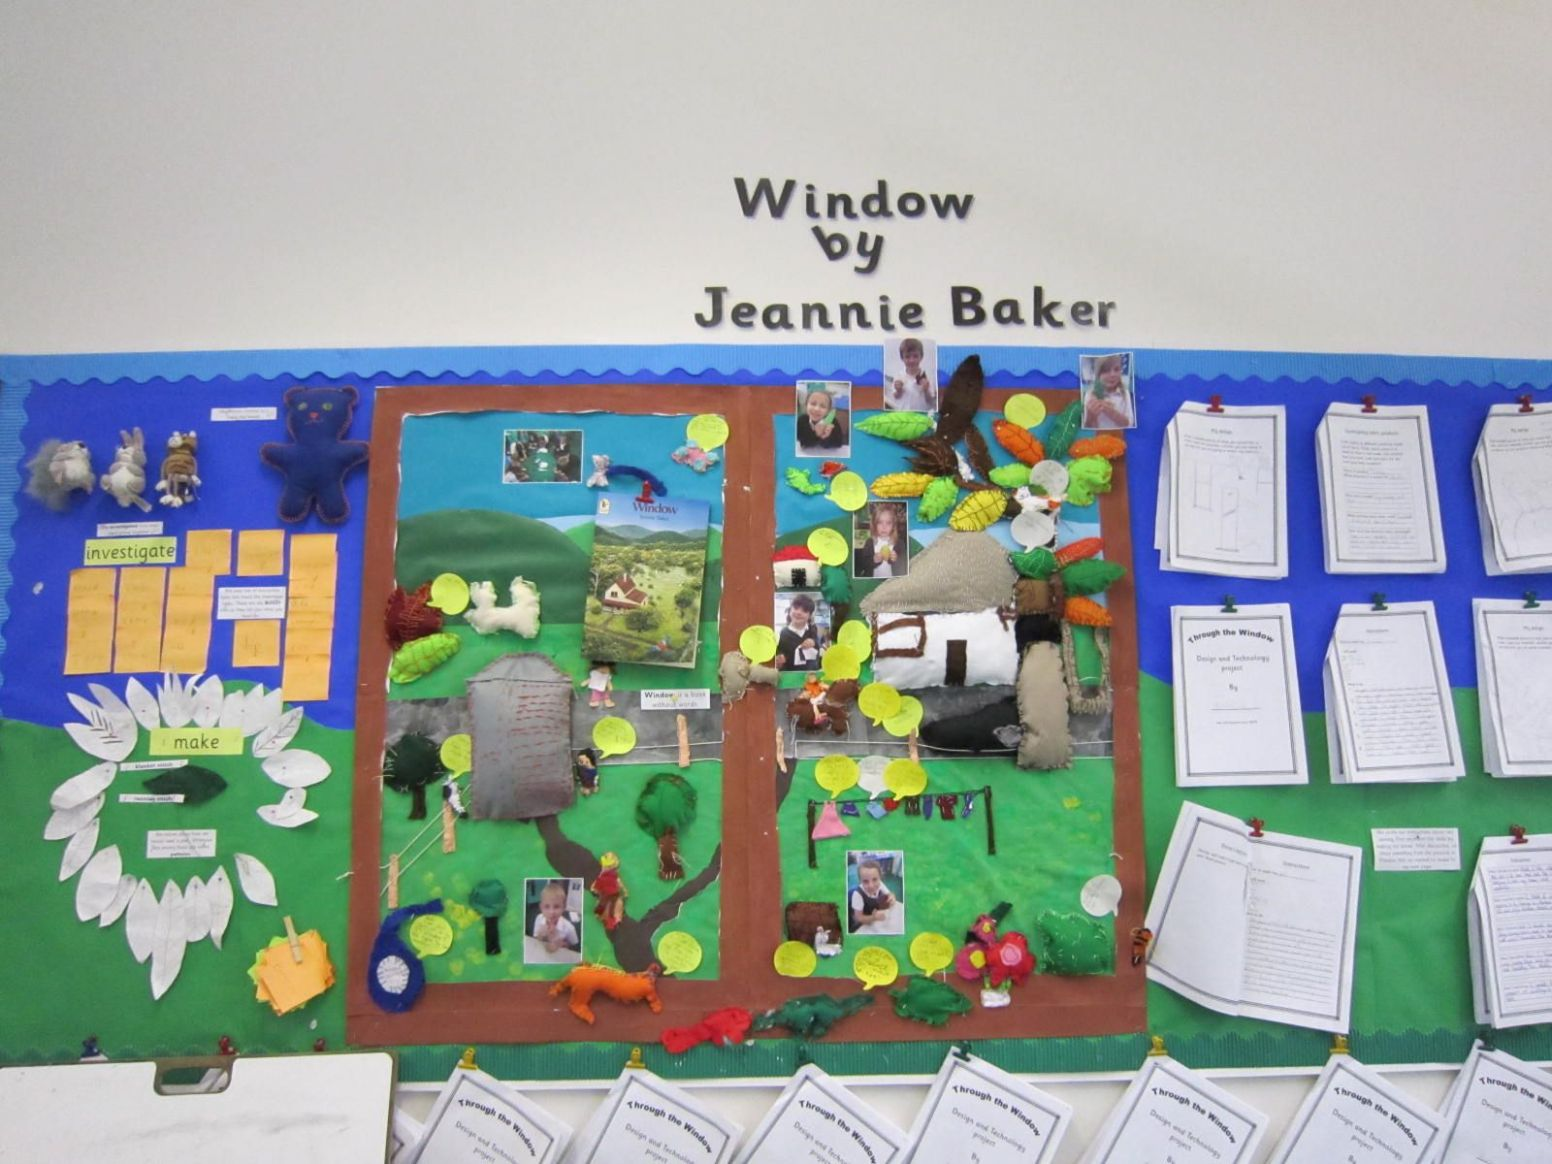 Thurton Primary School. Display based on Window by Jeannie Baker ..